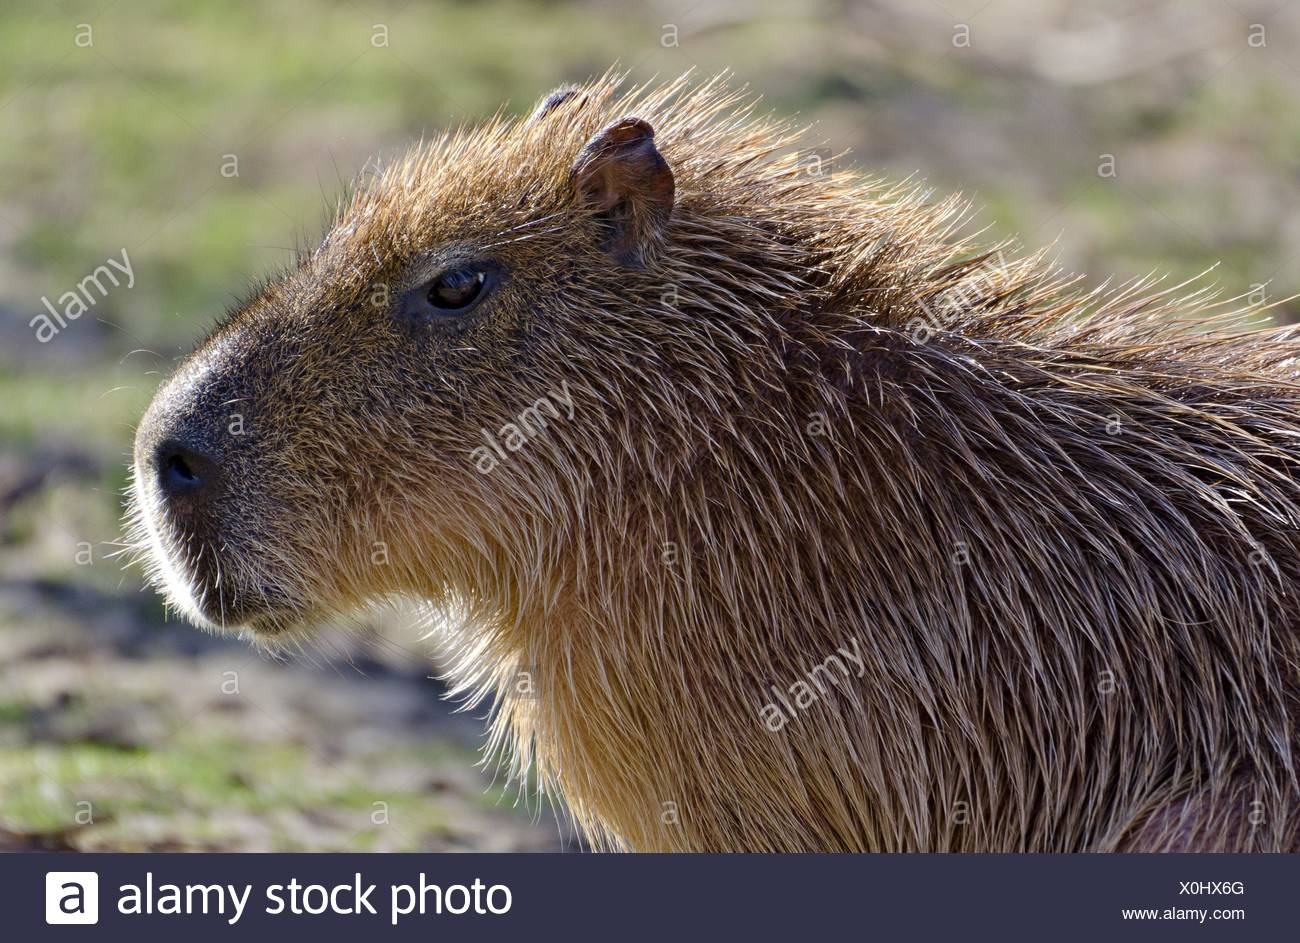 head of a grownup Capibara - Stock Image